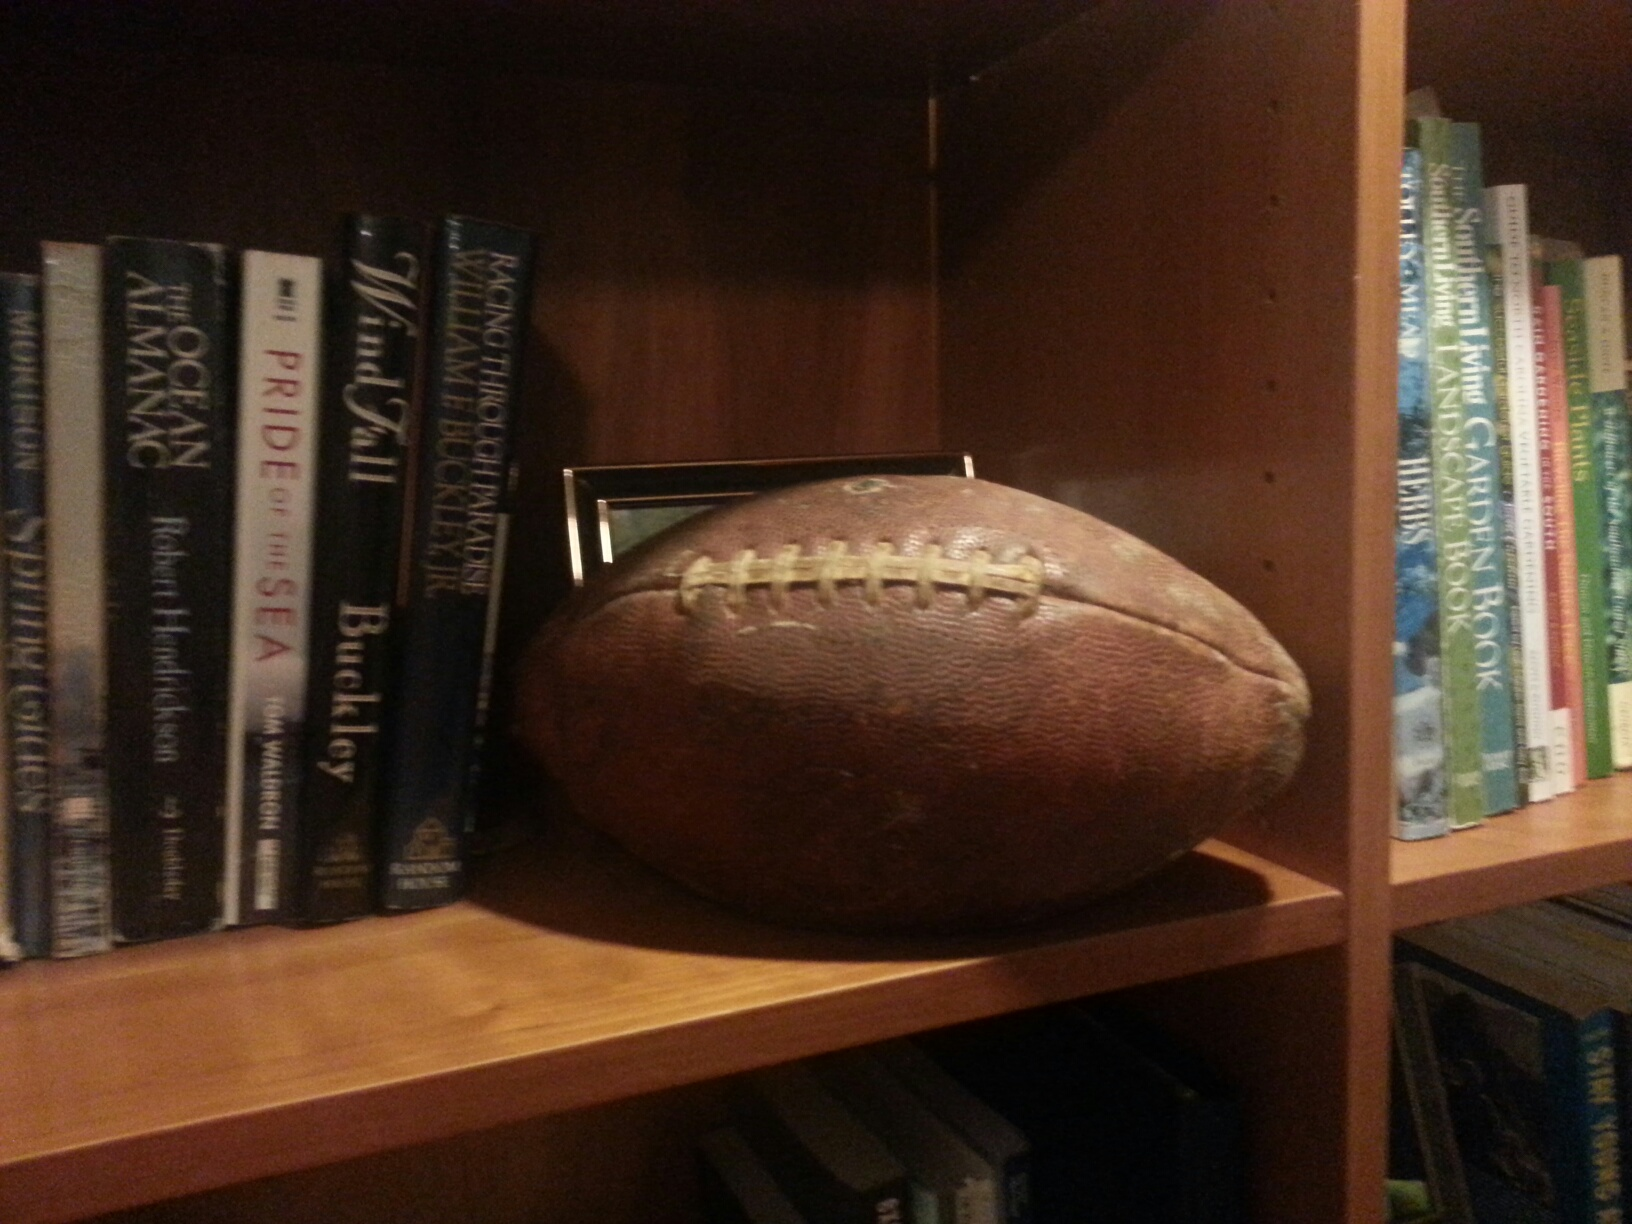 Game ball from GT-Alabama game in 1962